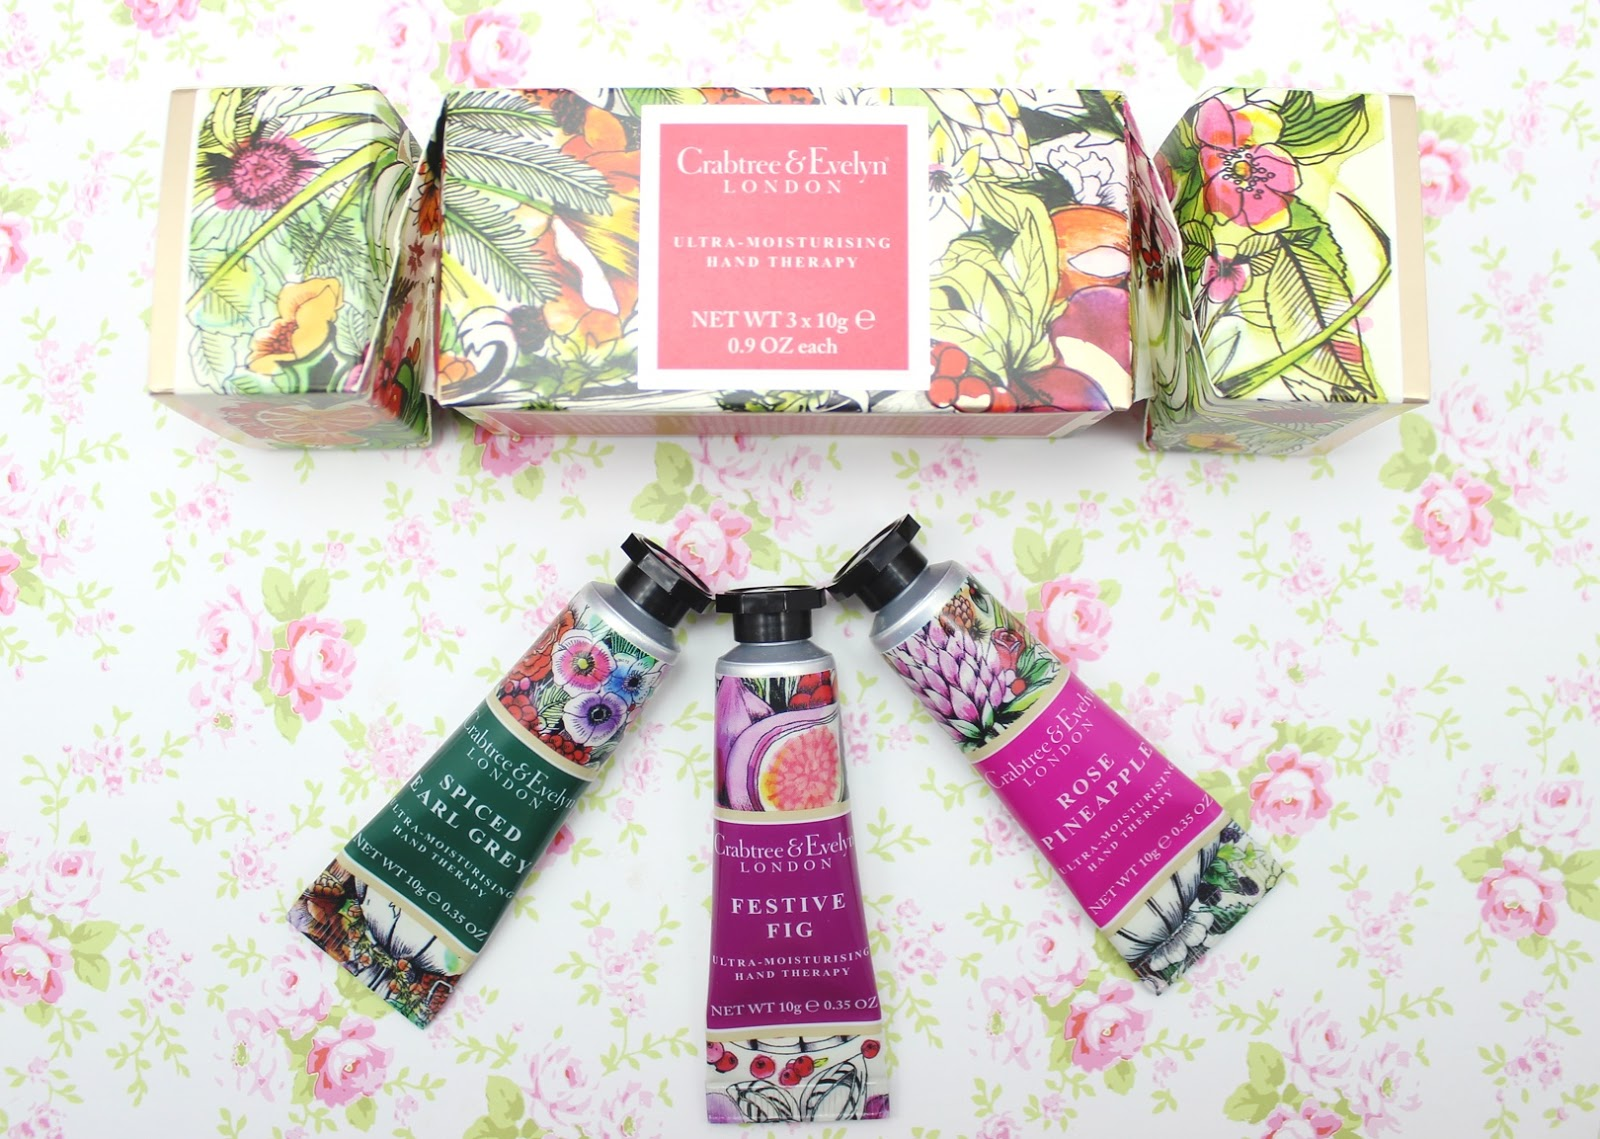 Crabtree & Evelyn Feast for the Senses Hand Therapy Cracker review